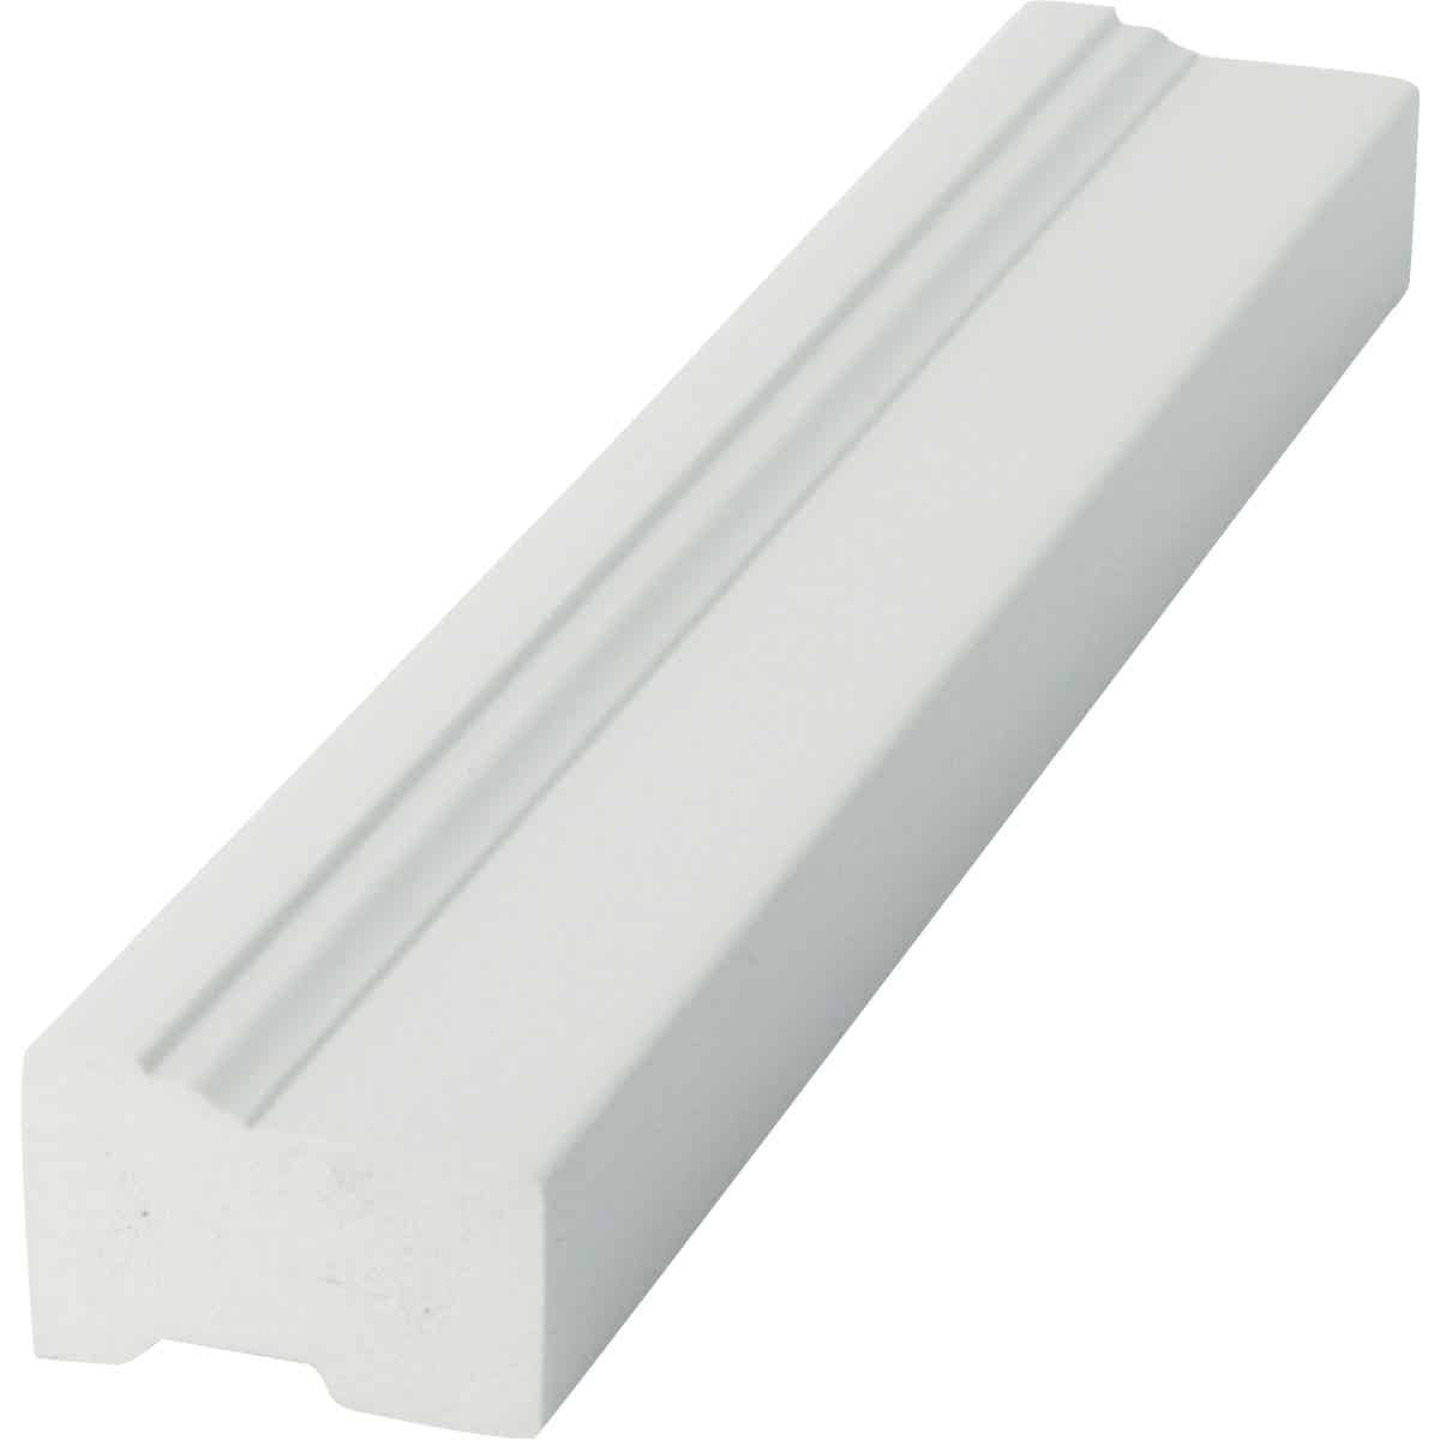 Royal 2 In. x 10 Ft. PVC Brick Molding Image 2